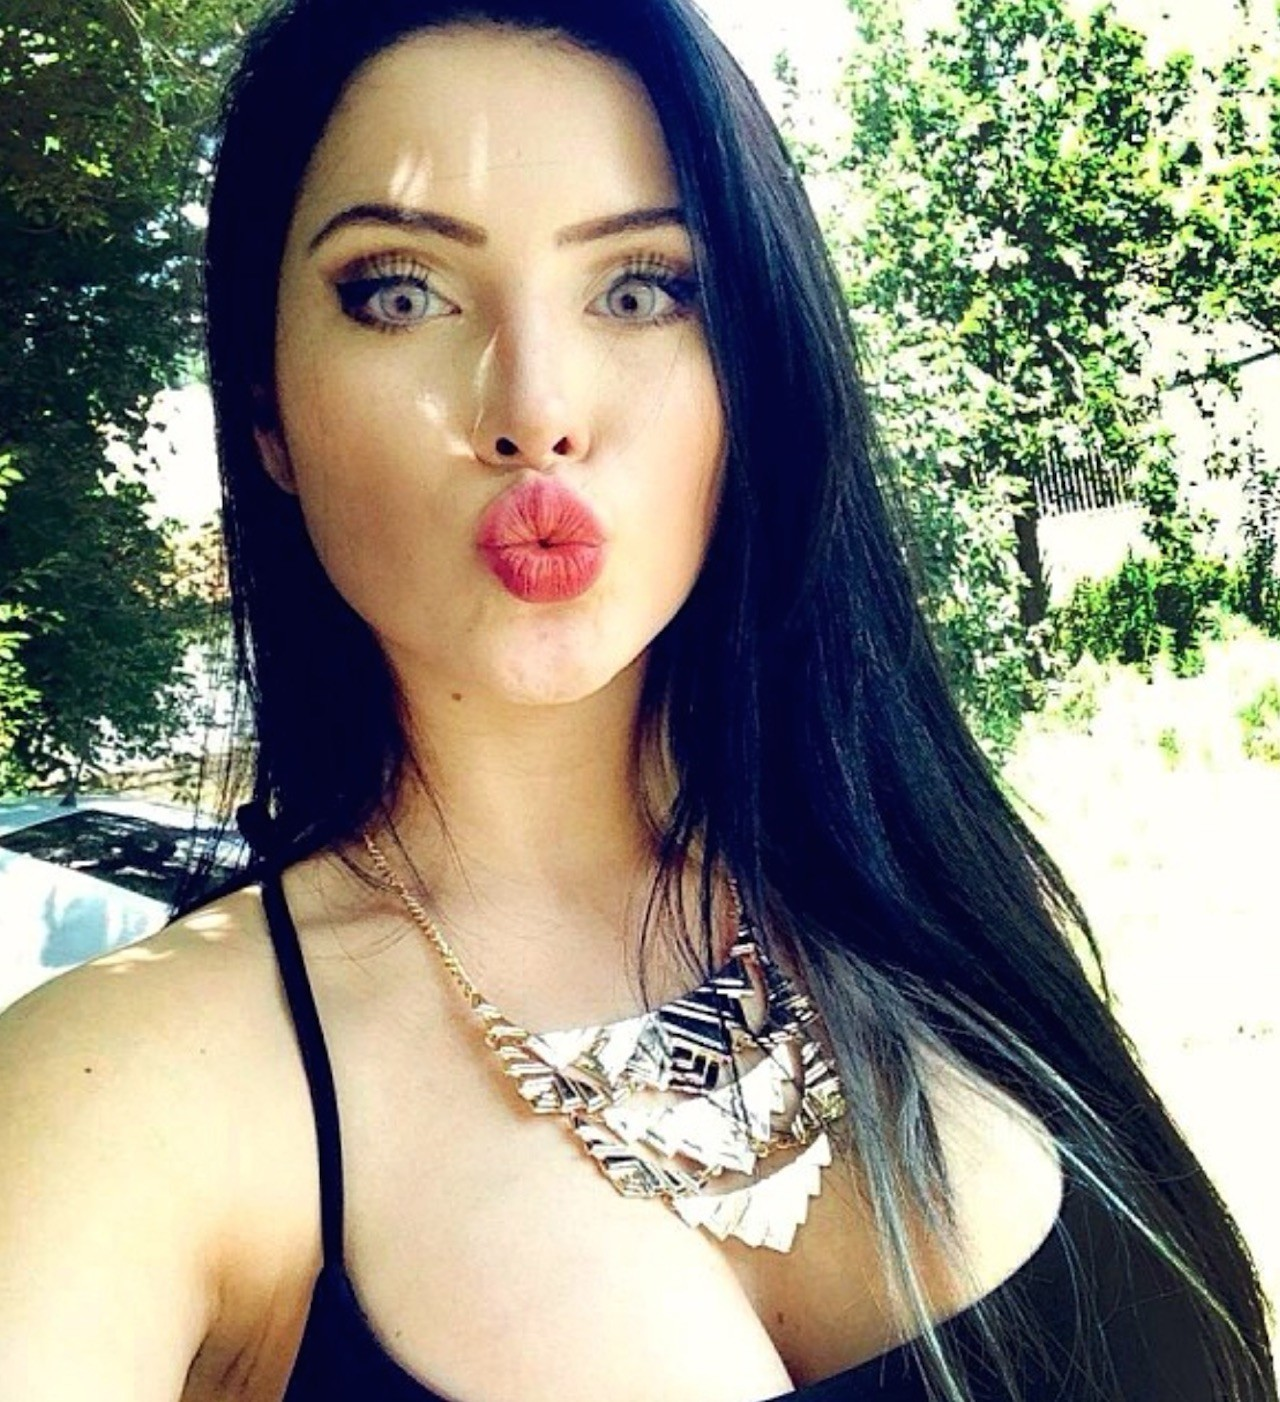 fox single hispanic girls Meet compatible hispanic singles online eharmony is committed to helping hispanic men and women find long-lasting love, we are confident in our ability to do so.